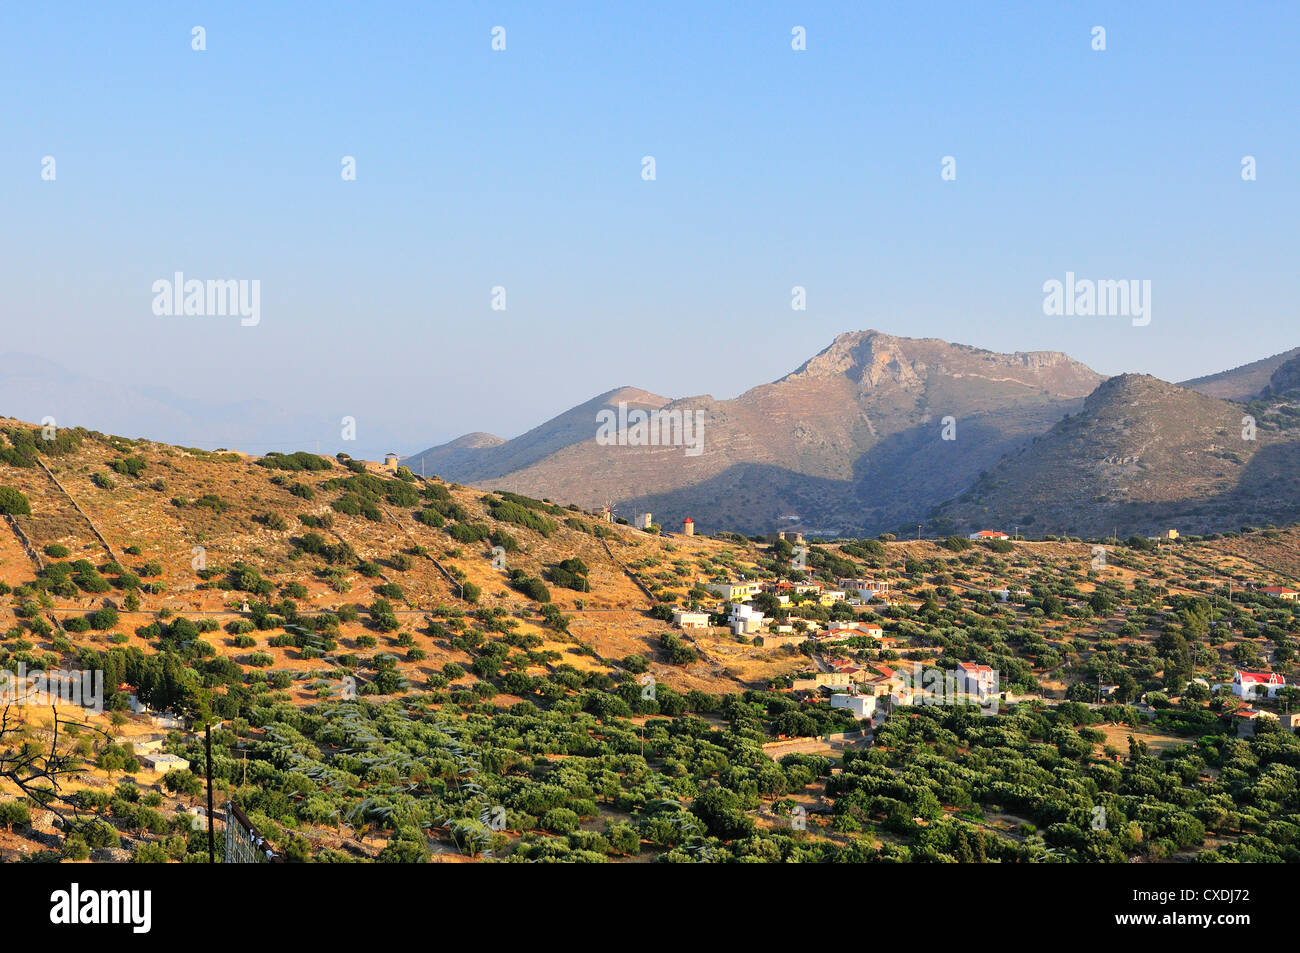 hill top village Pano Pine above old  Elounda with disused windmills on the ridge crest of kato pine - Stock Image